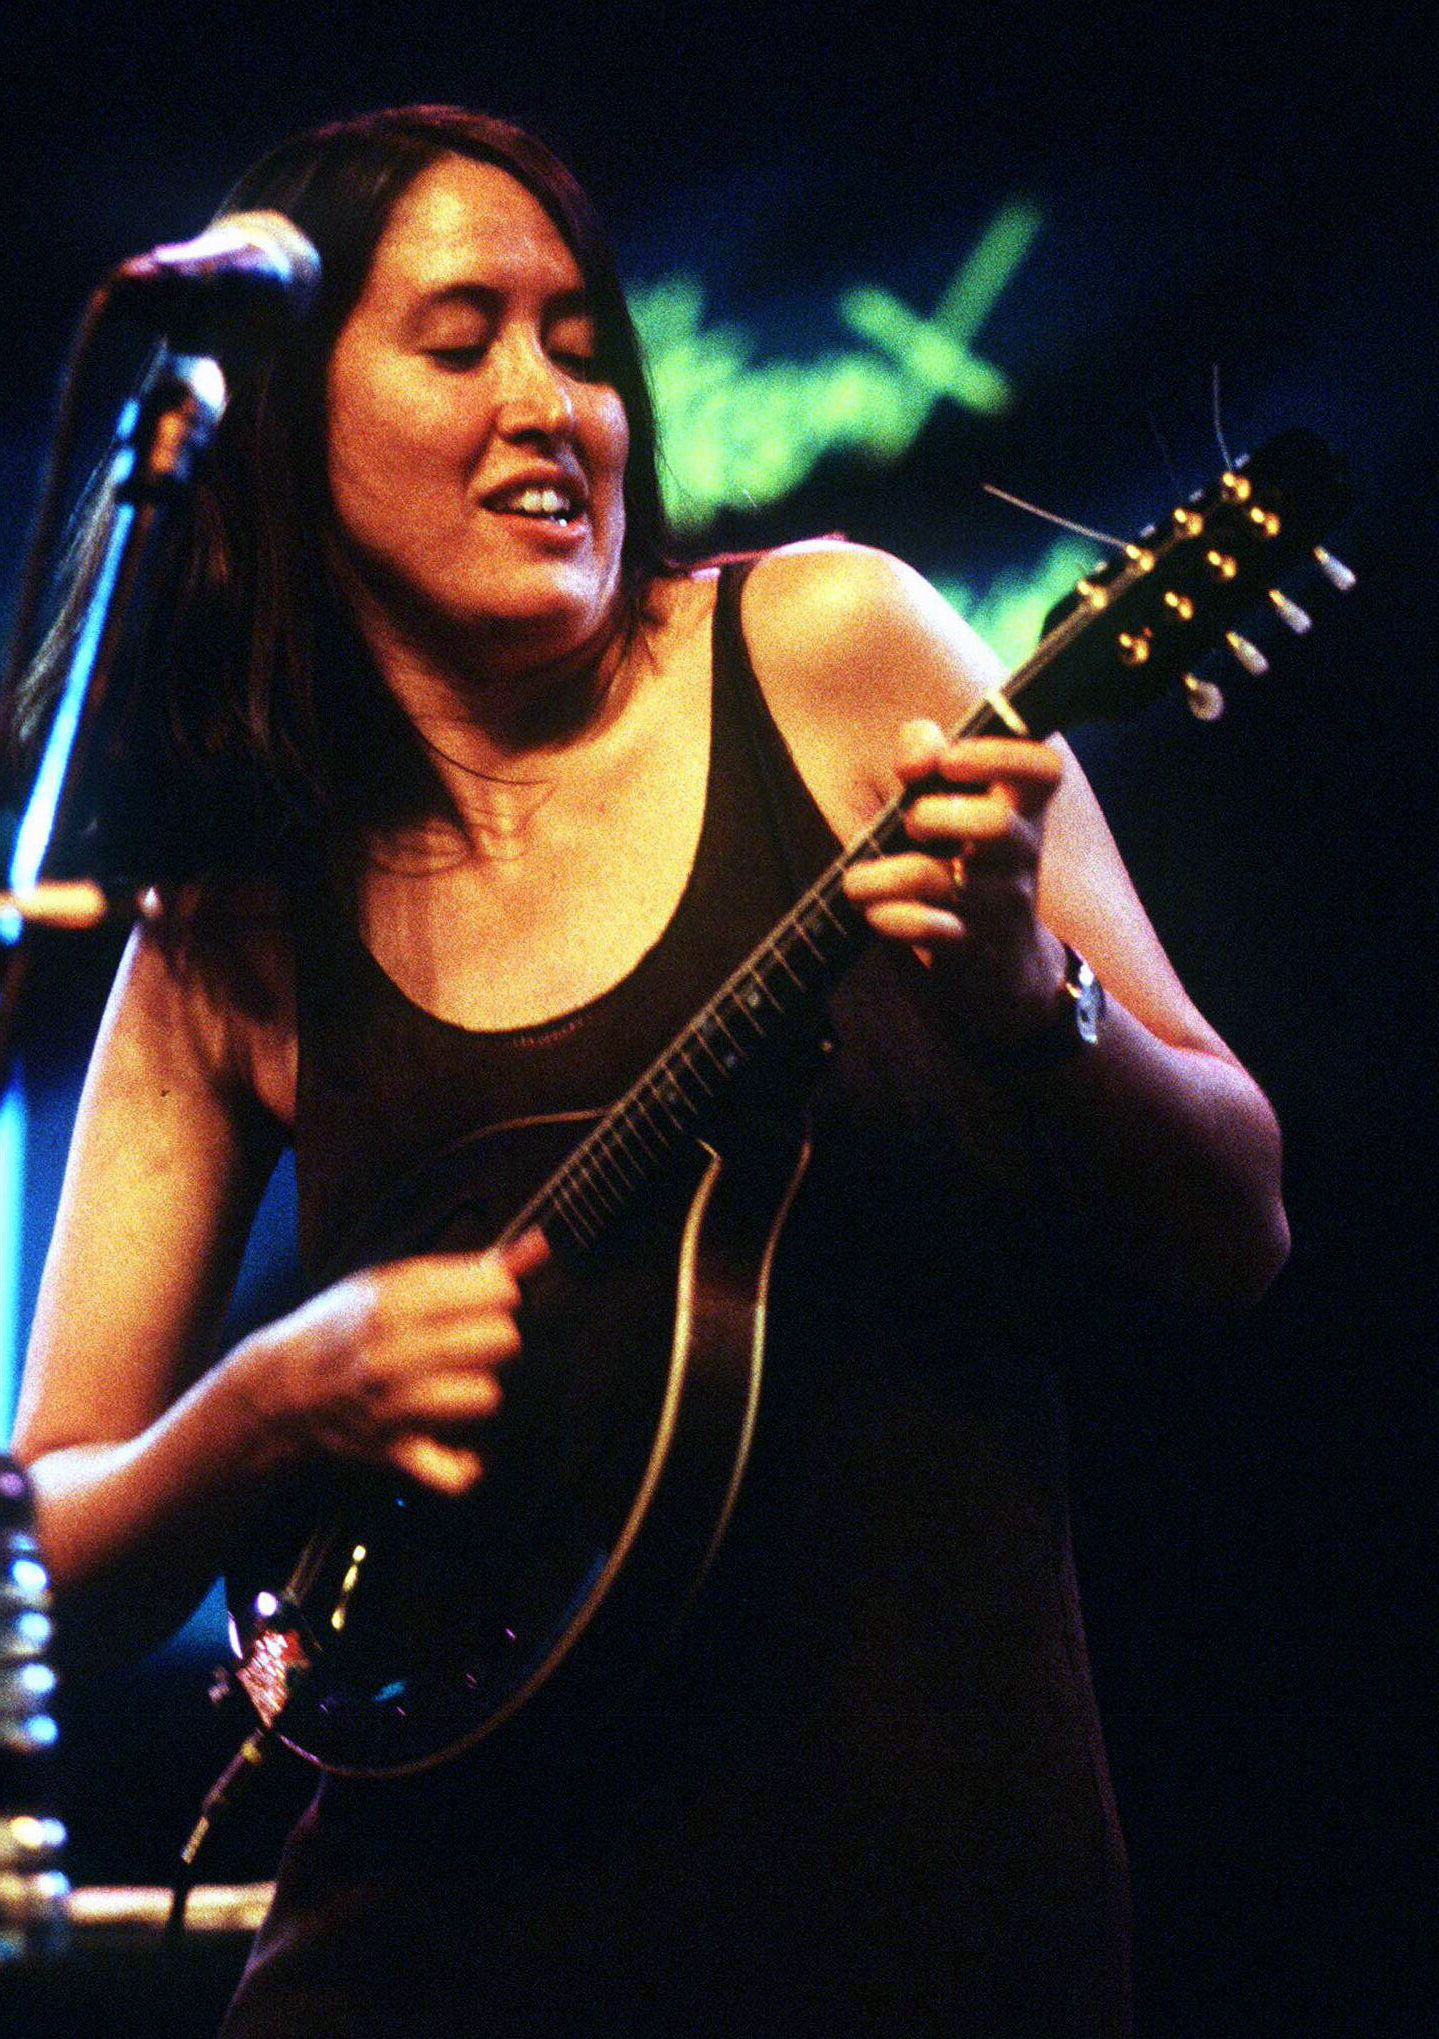 Montreux Jazz Festival >> Raise the Woof: Michelle Shocked Releases Album Only Audible to Dogs